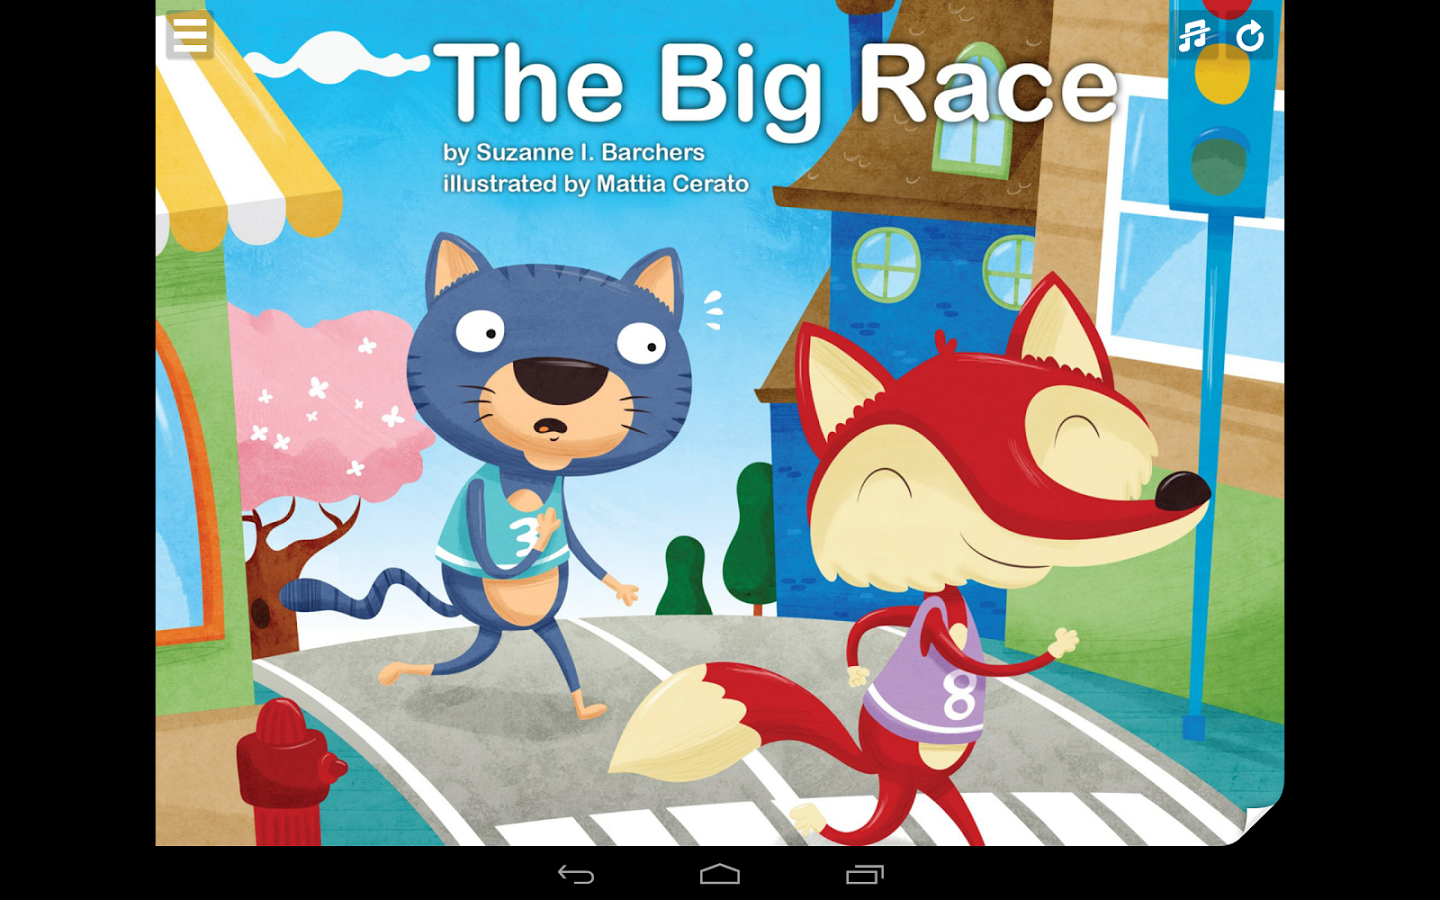 Race clipart the big #12